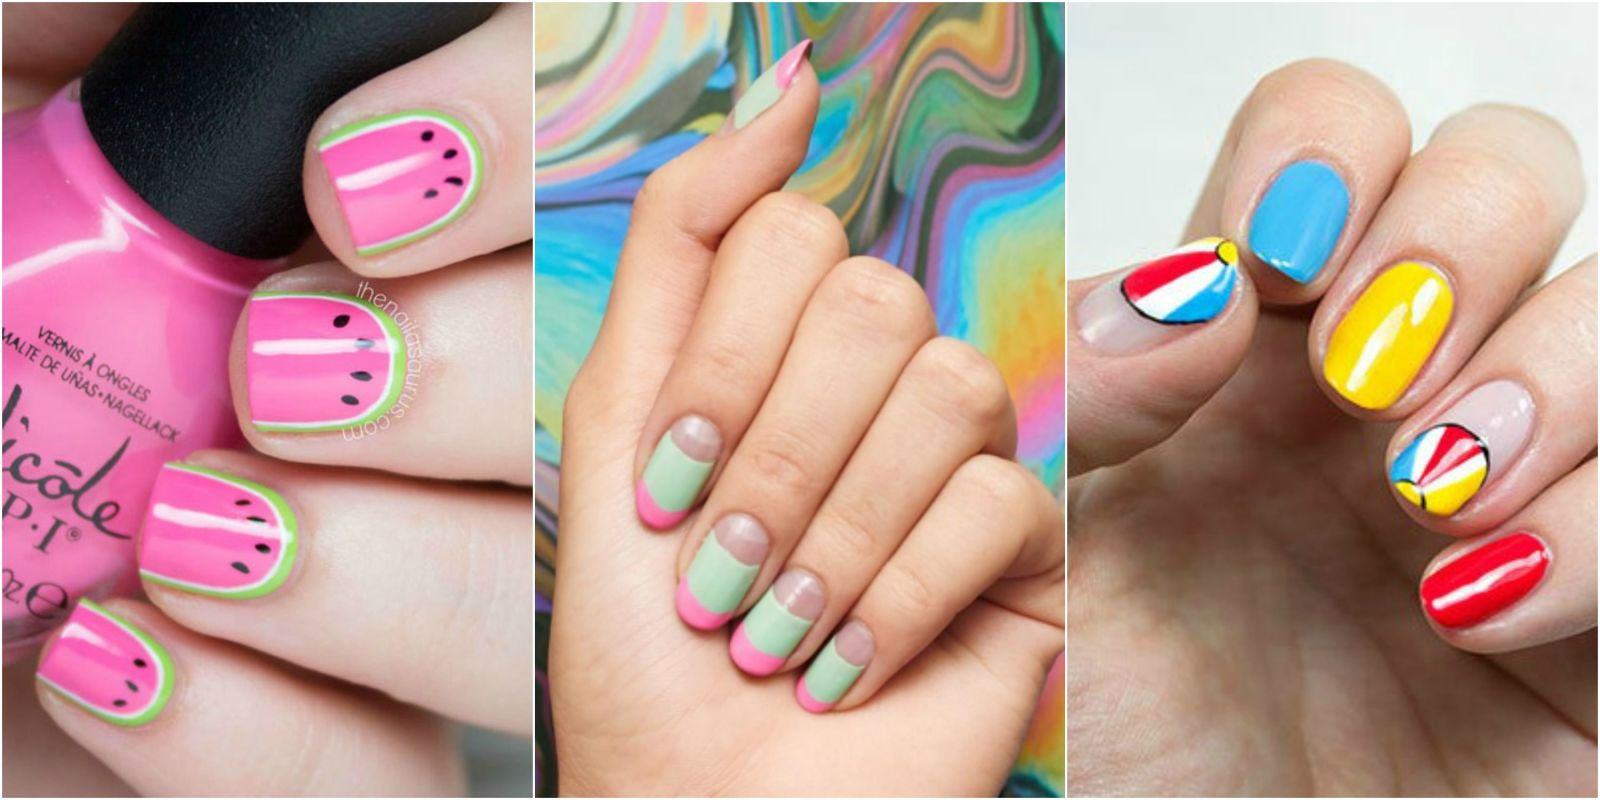 30 summer nail designs for 2017 best nail polish art ideas for 30 summer nail designs for 2017 best nail polish art ideas for summer prinsesfo Image collections